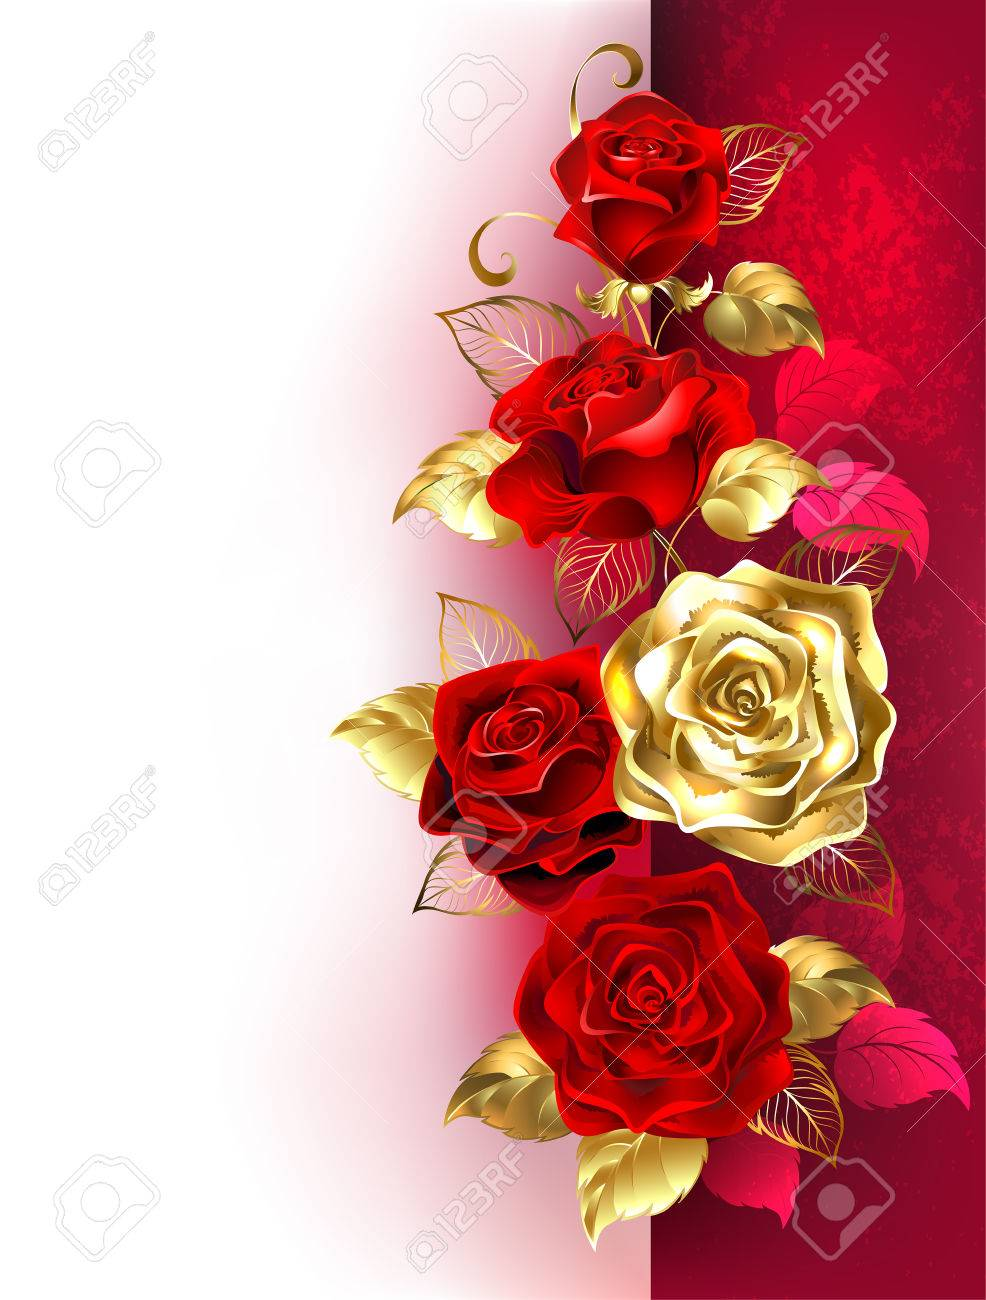 Design With Red And Gold Roses On A White And Red Background